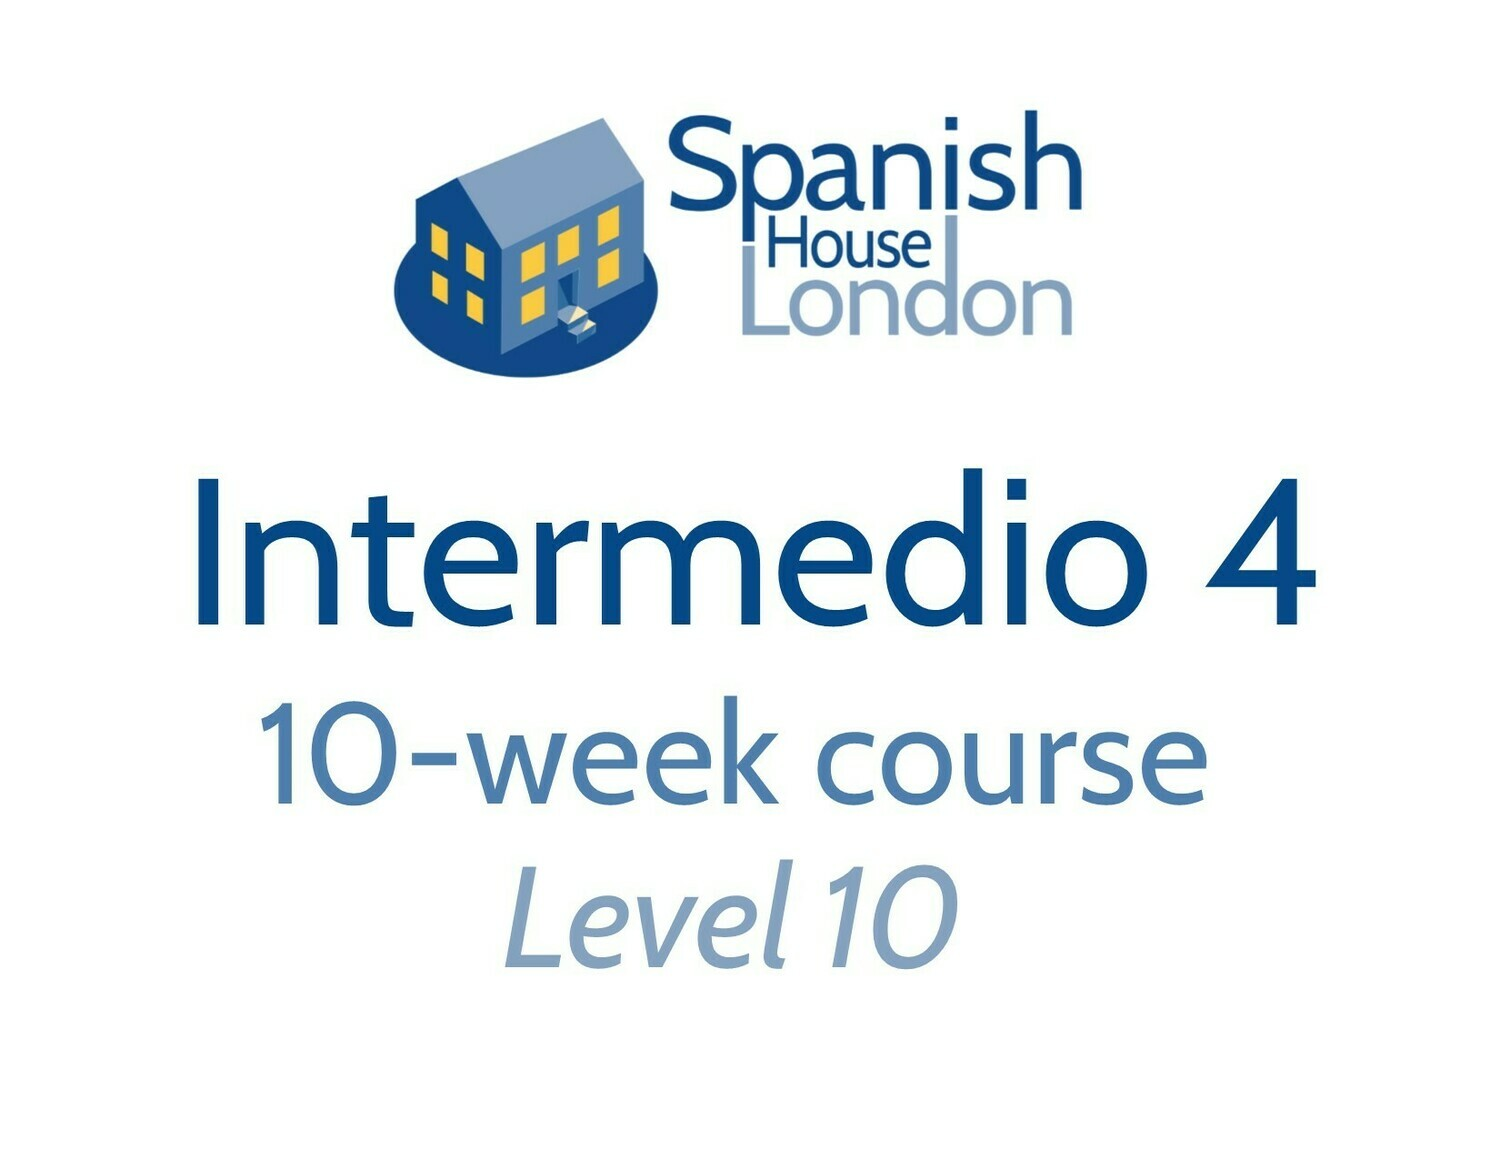 Intermedio 4 Course starting on 20th July at 6pm